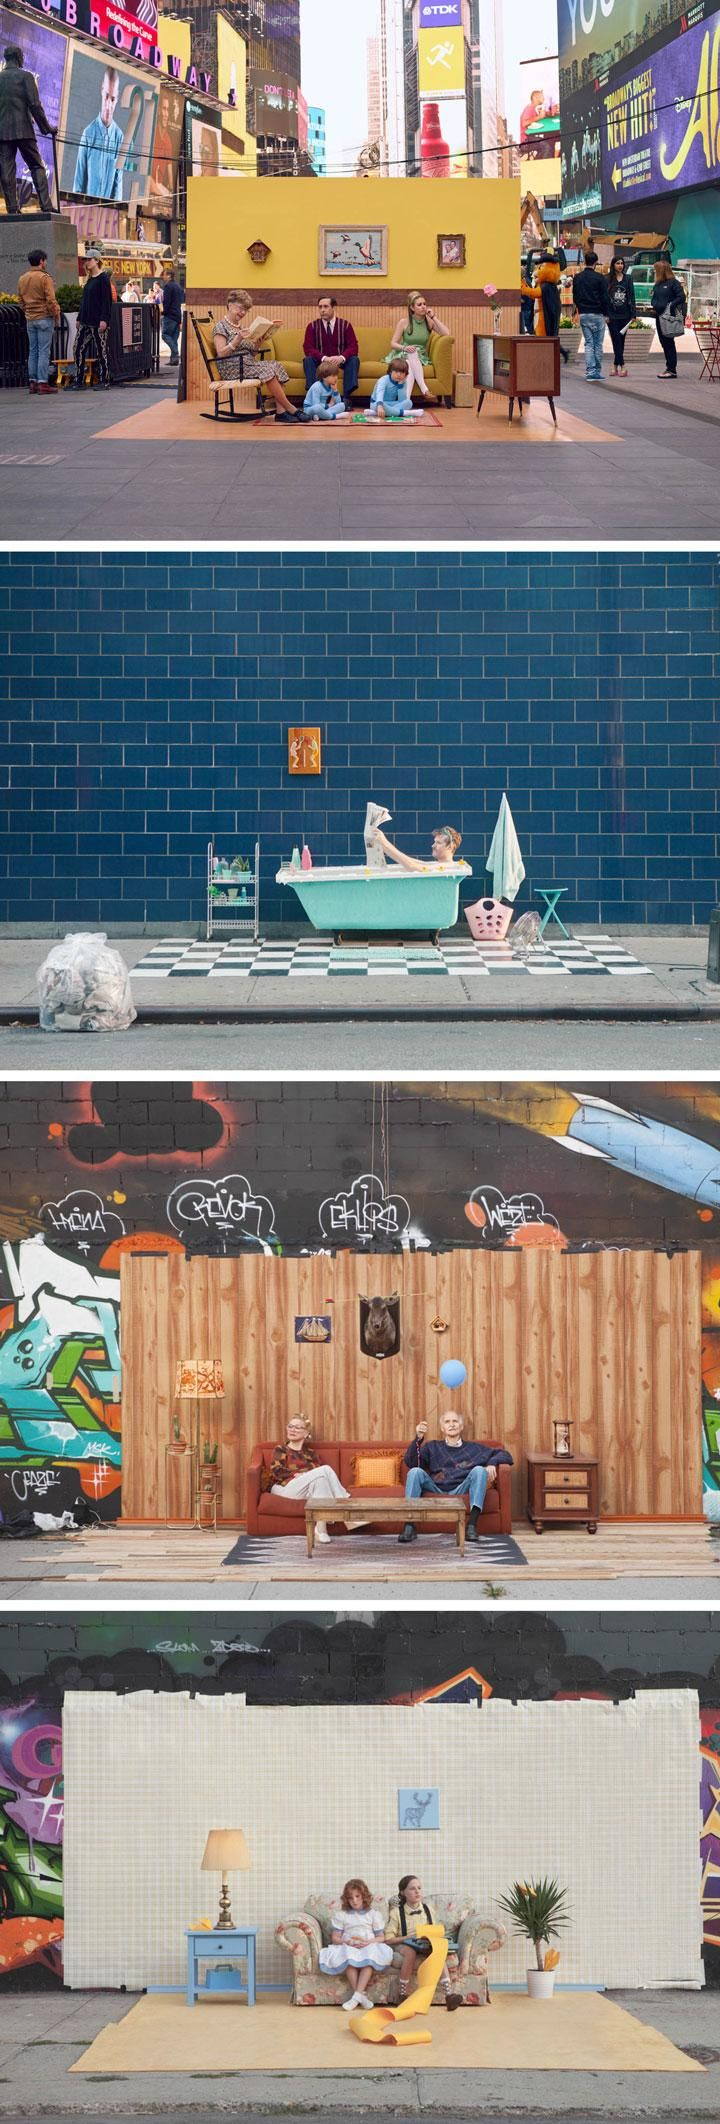 #Setinthestreet is an ongoing art project by photographer Justin Bettman. Bettman collects unwanted furniture and create elaborate home sets with Wes Anderson–inspired aesthetic on random streets in New York.